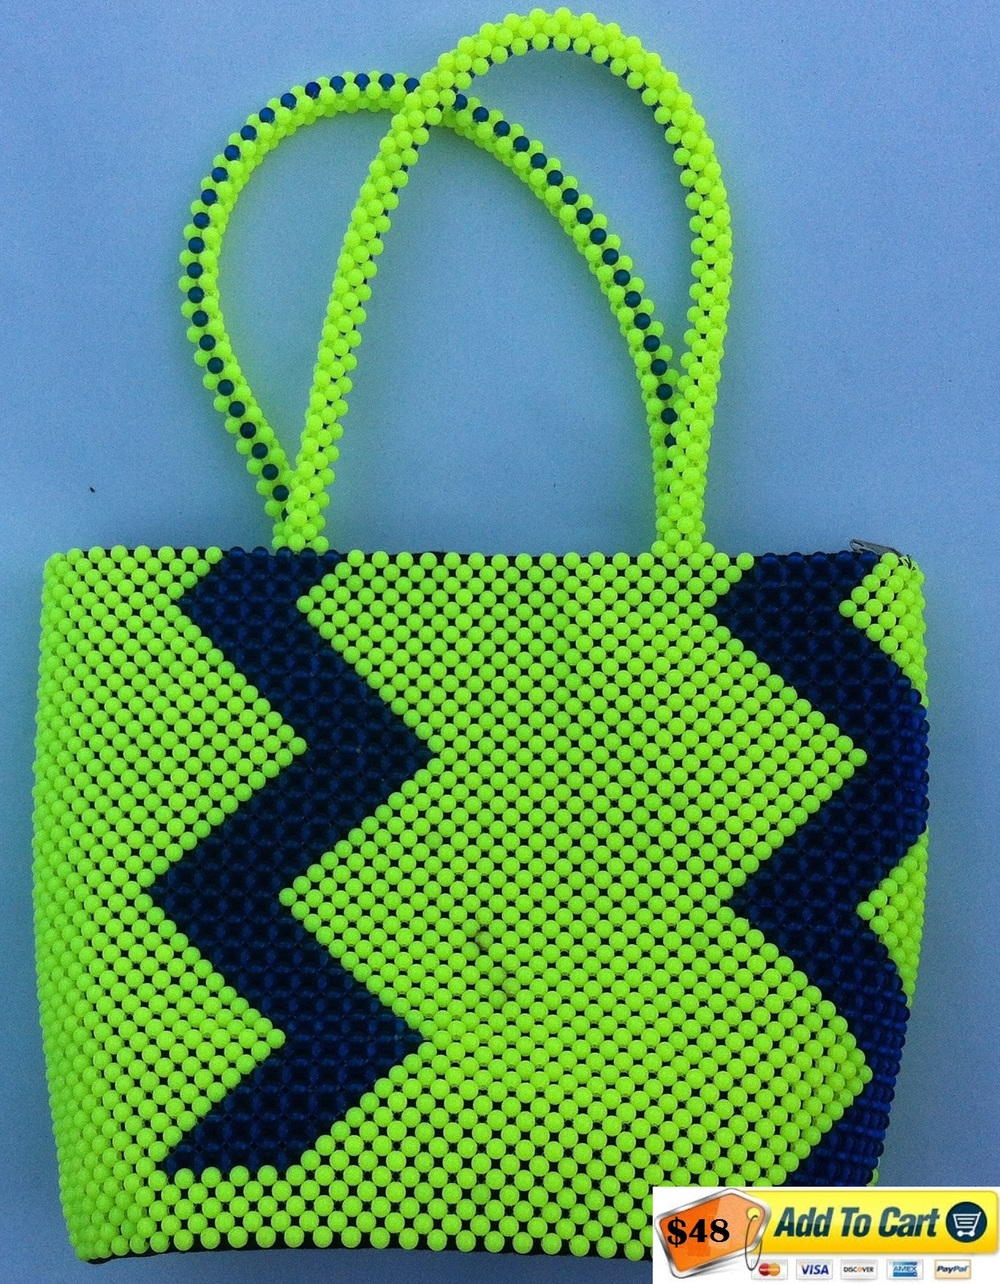 AWB 109. African Women's Bag